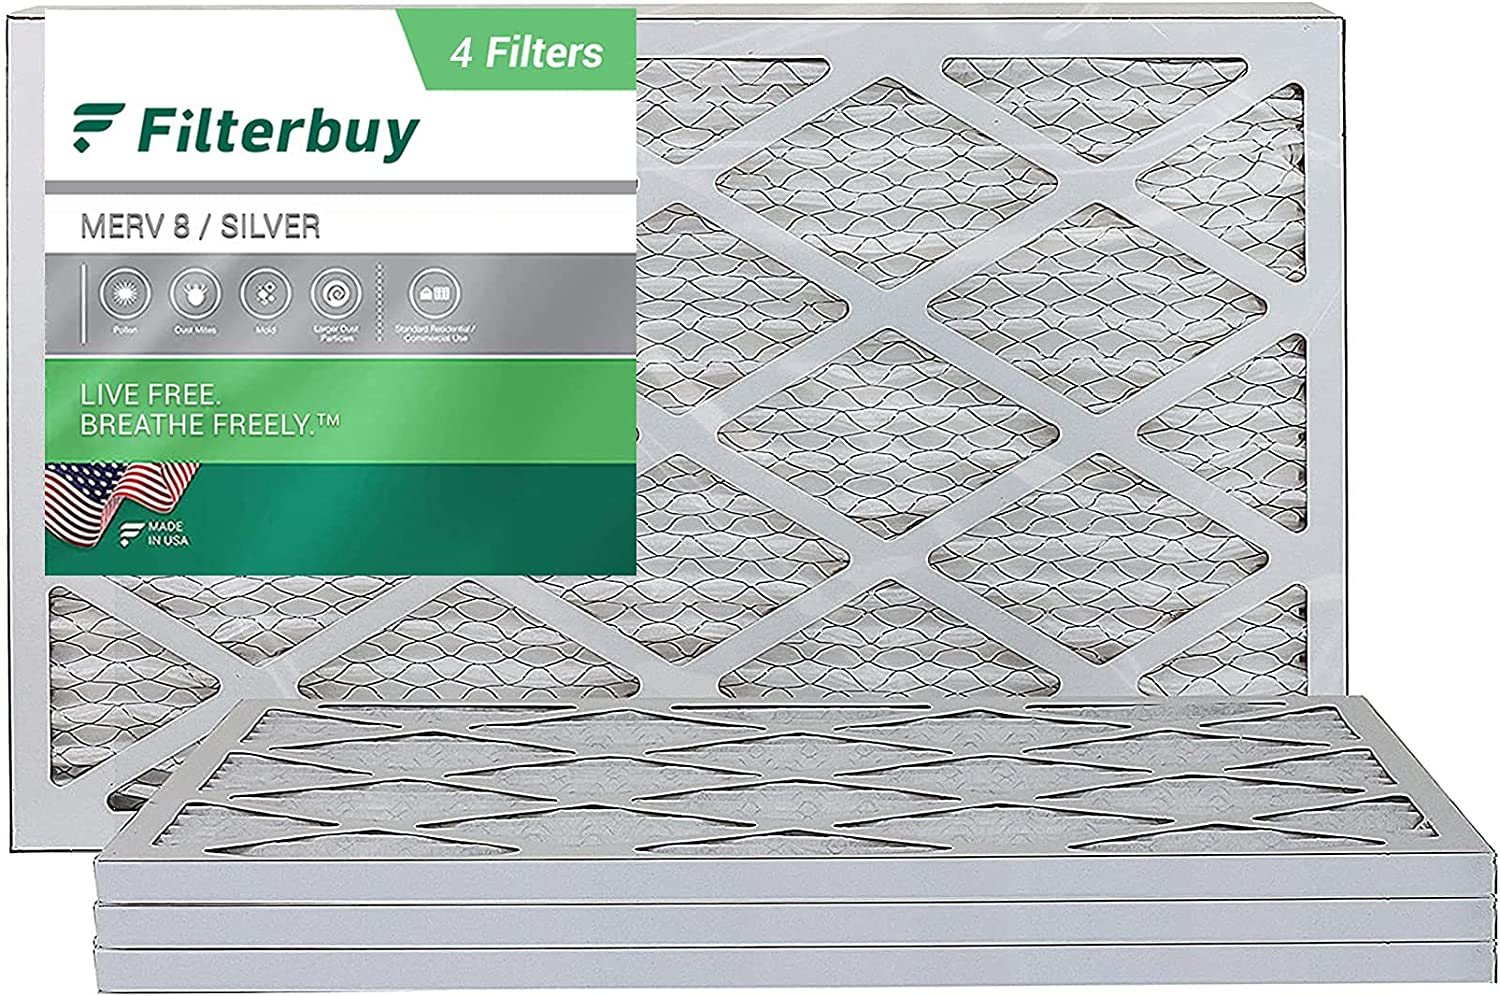 FilterBuy 12x27x1 Air New products world's highest quality popular Filter MERV 8 Pleated AC HVAC Furnace Now free shipping Fil